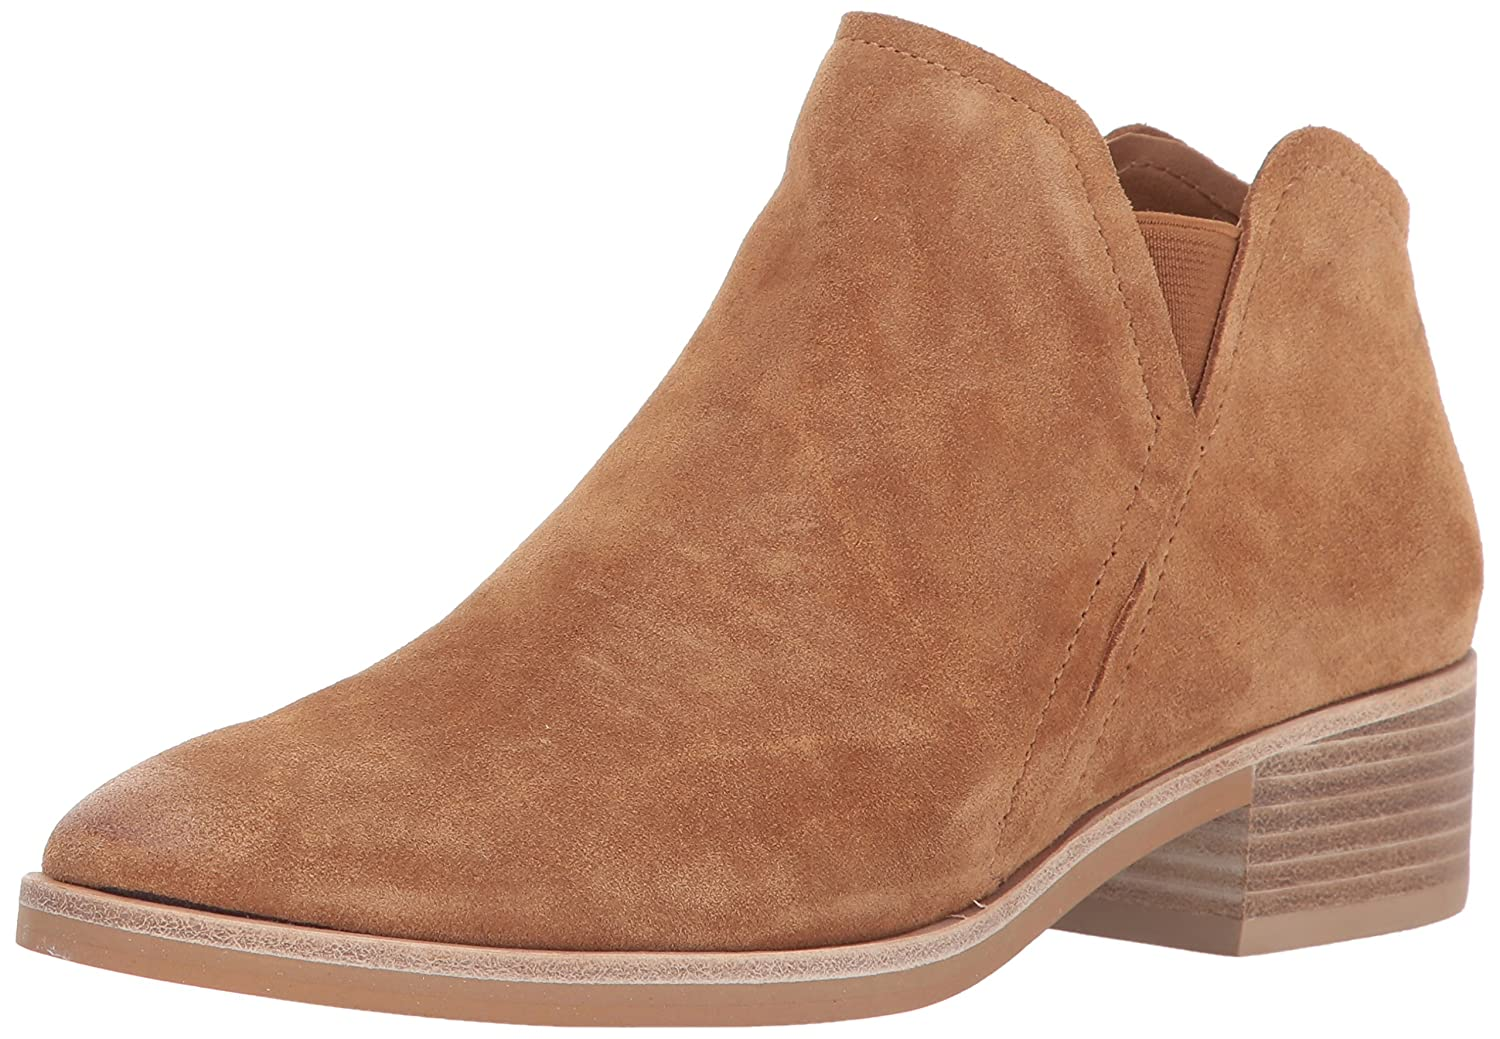 Dolce Vita Women's Tay Ankle Boot B06XKQ1QGG 7 B(M) US|Saddle Suede